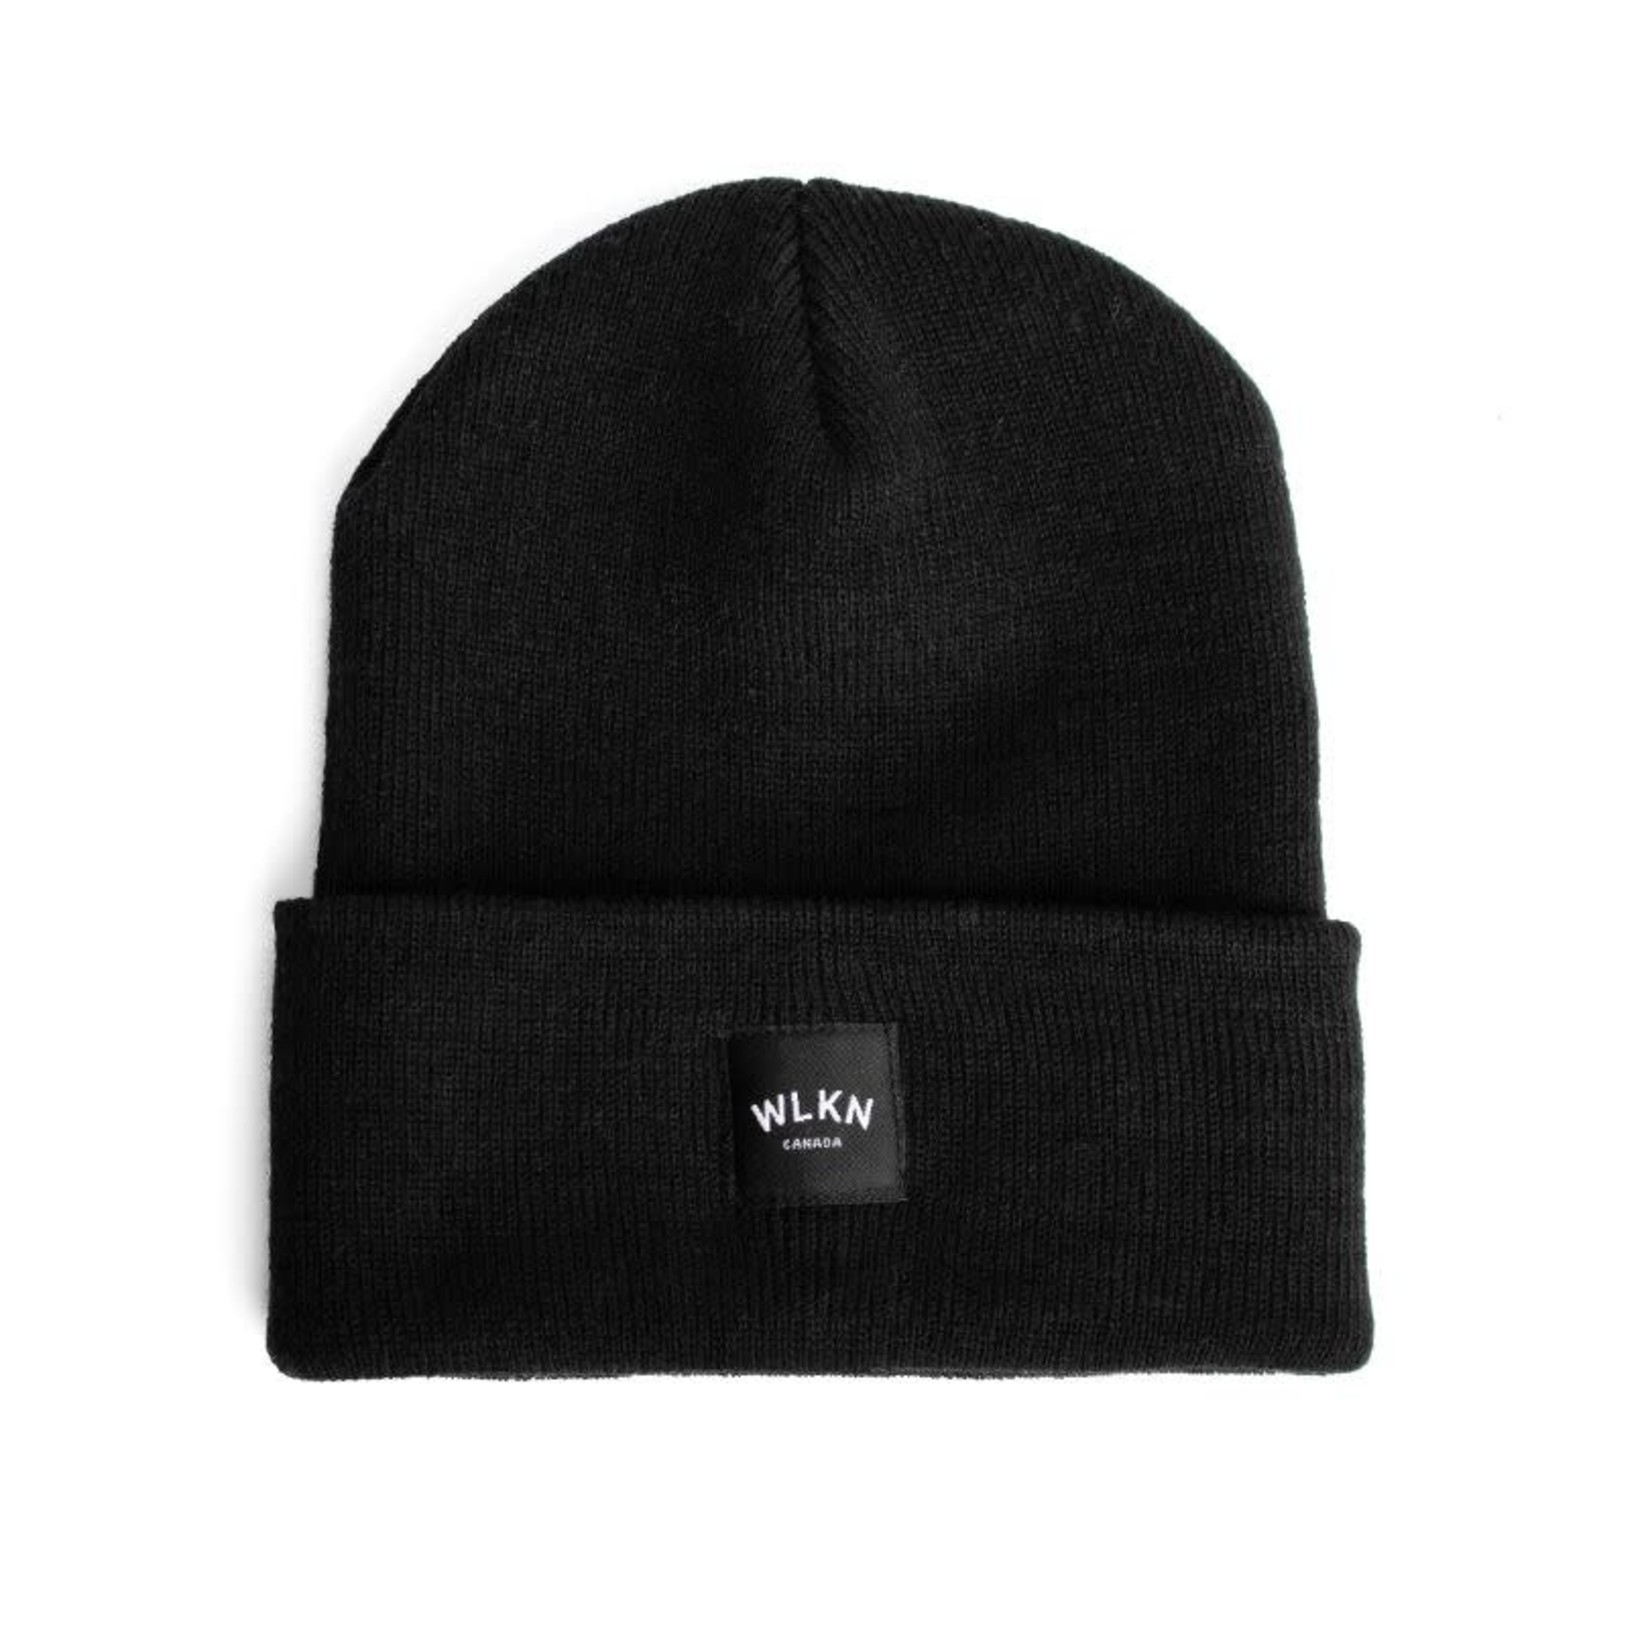 WLKN WLKN : Rounded Country Label Beanie Black O/S